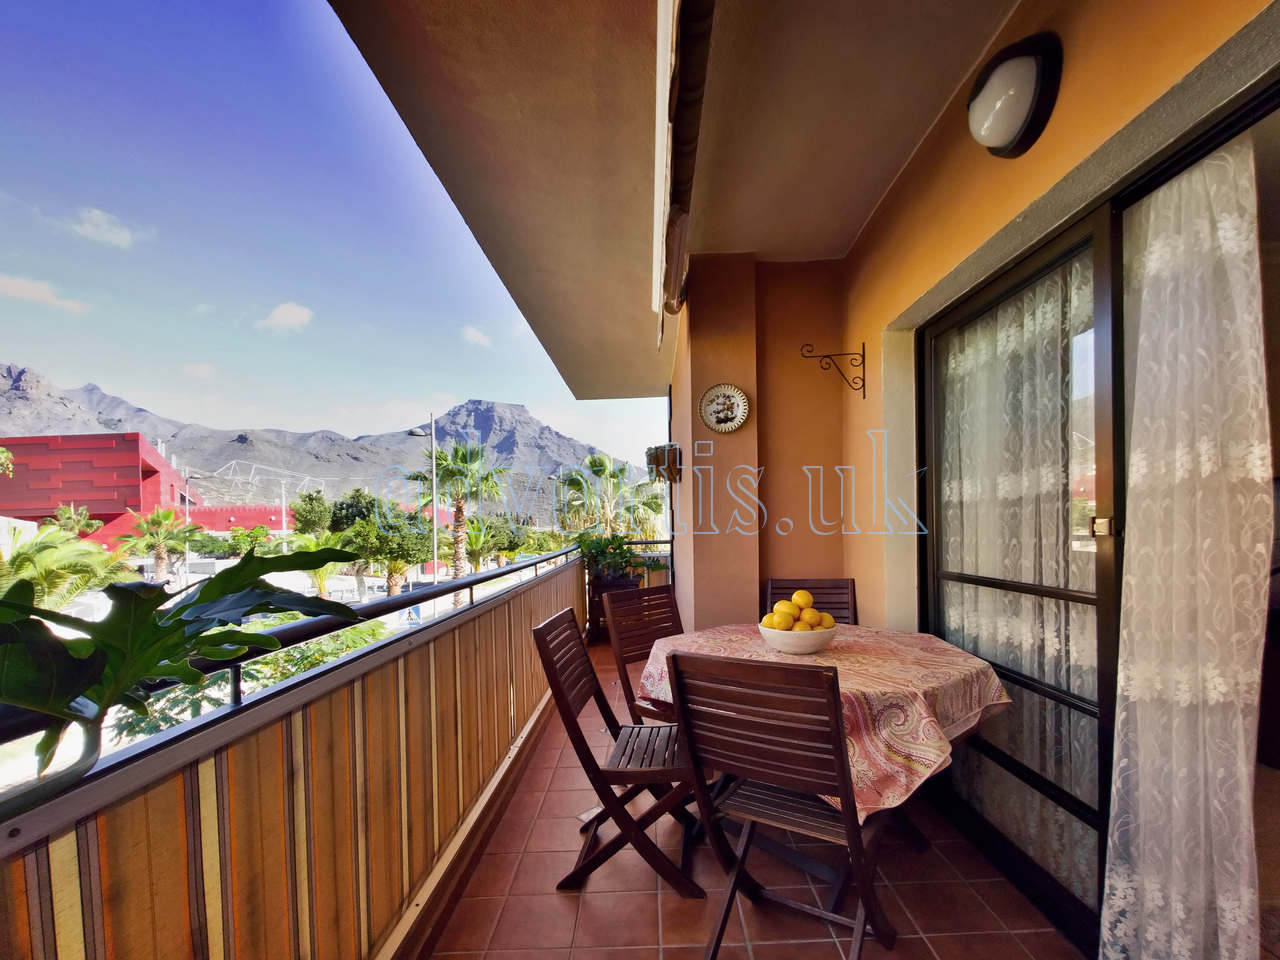 2 bedroom apartment for sale in Adeje, Tenerife €250.000